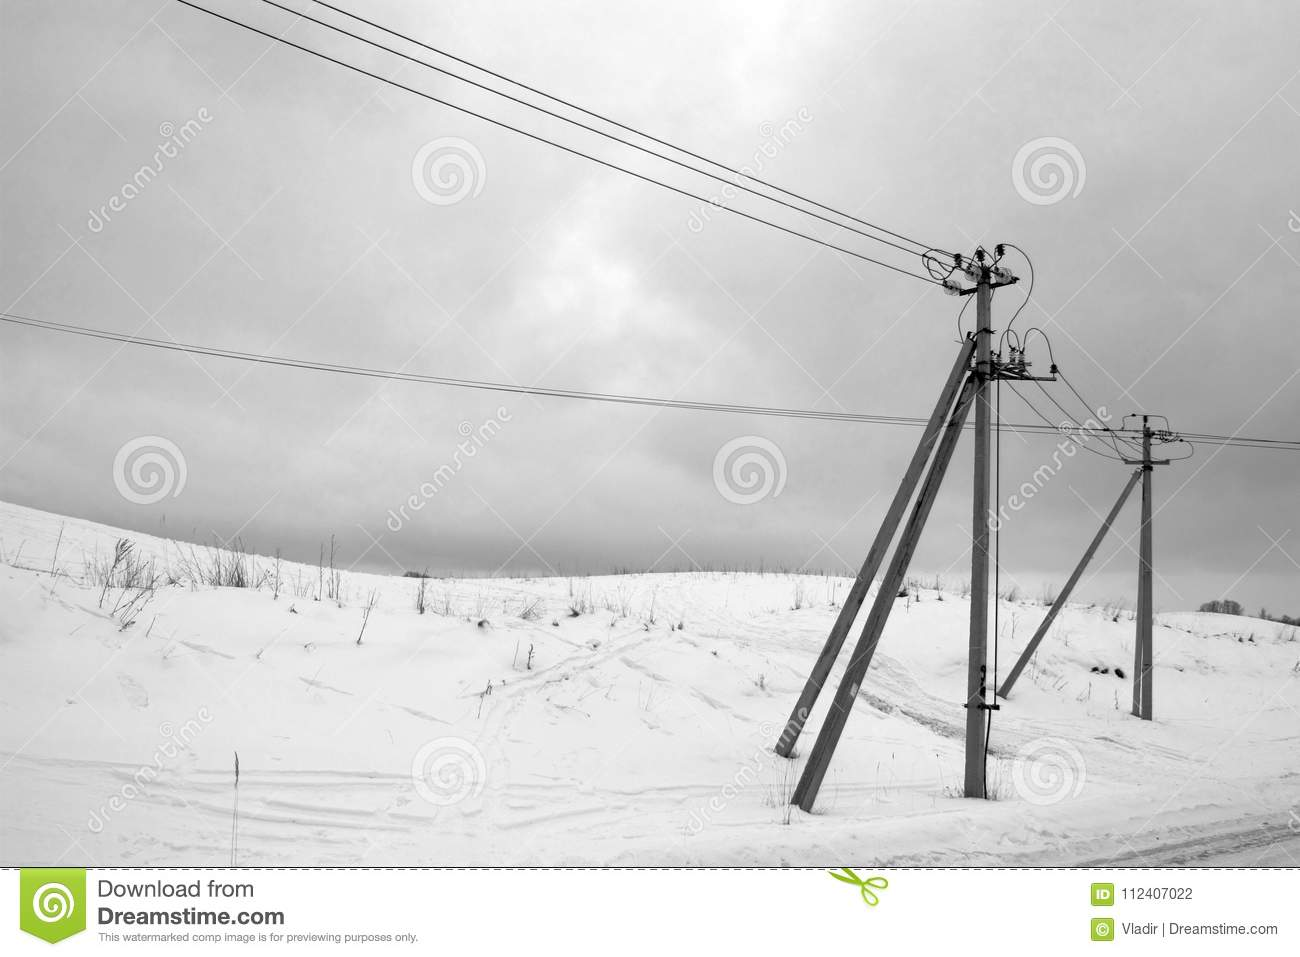 Supports And Wires Of Electric Transmission Line Stock Photo - Image ...